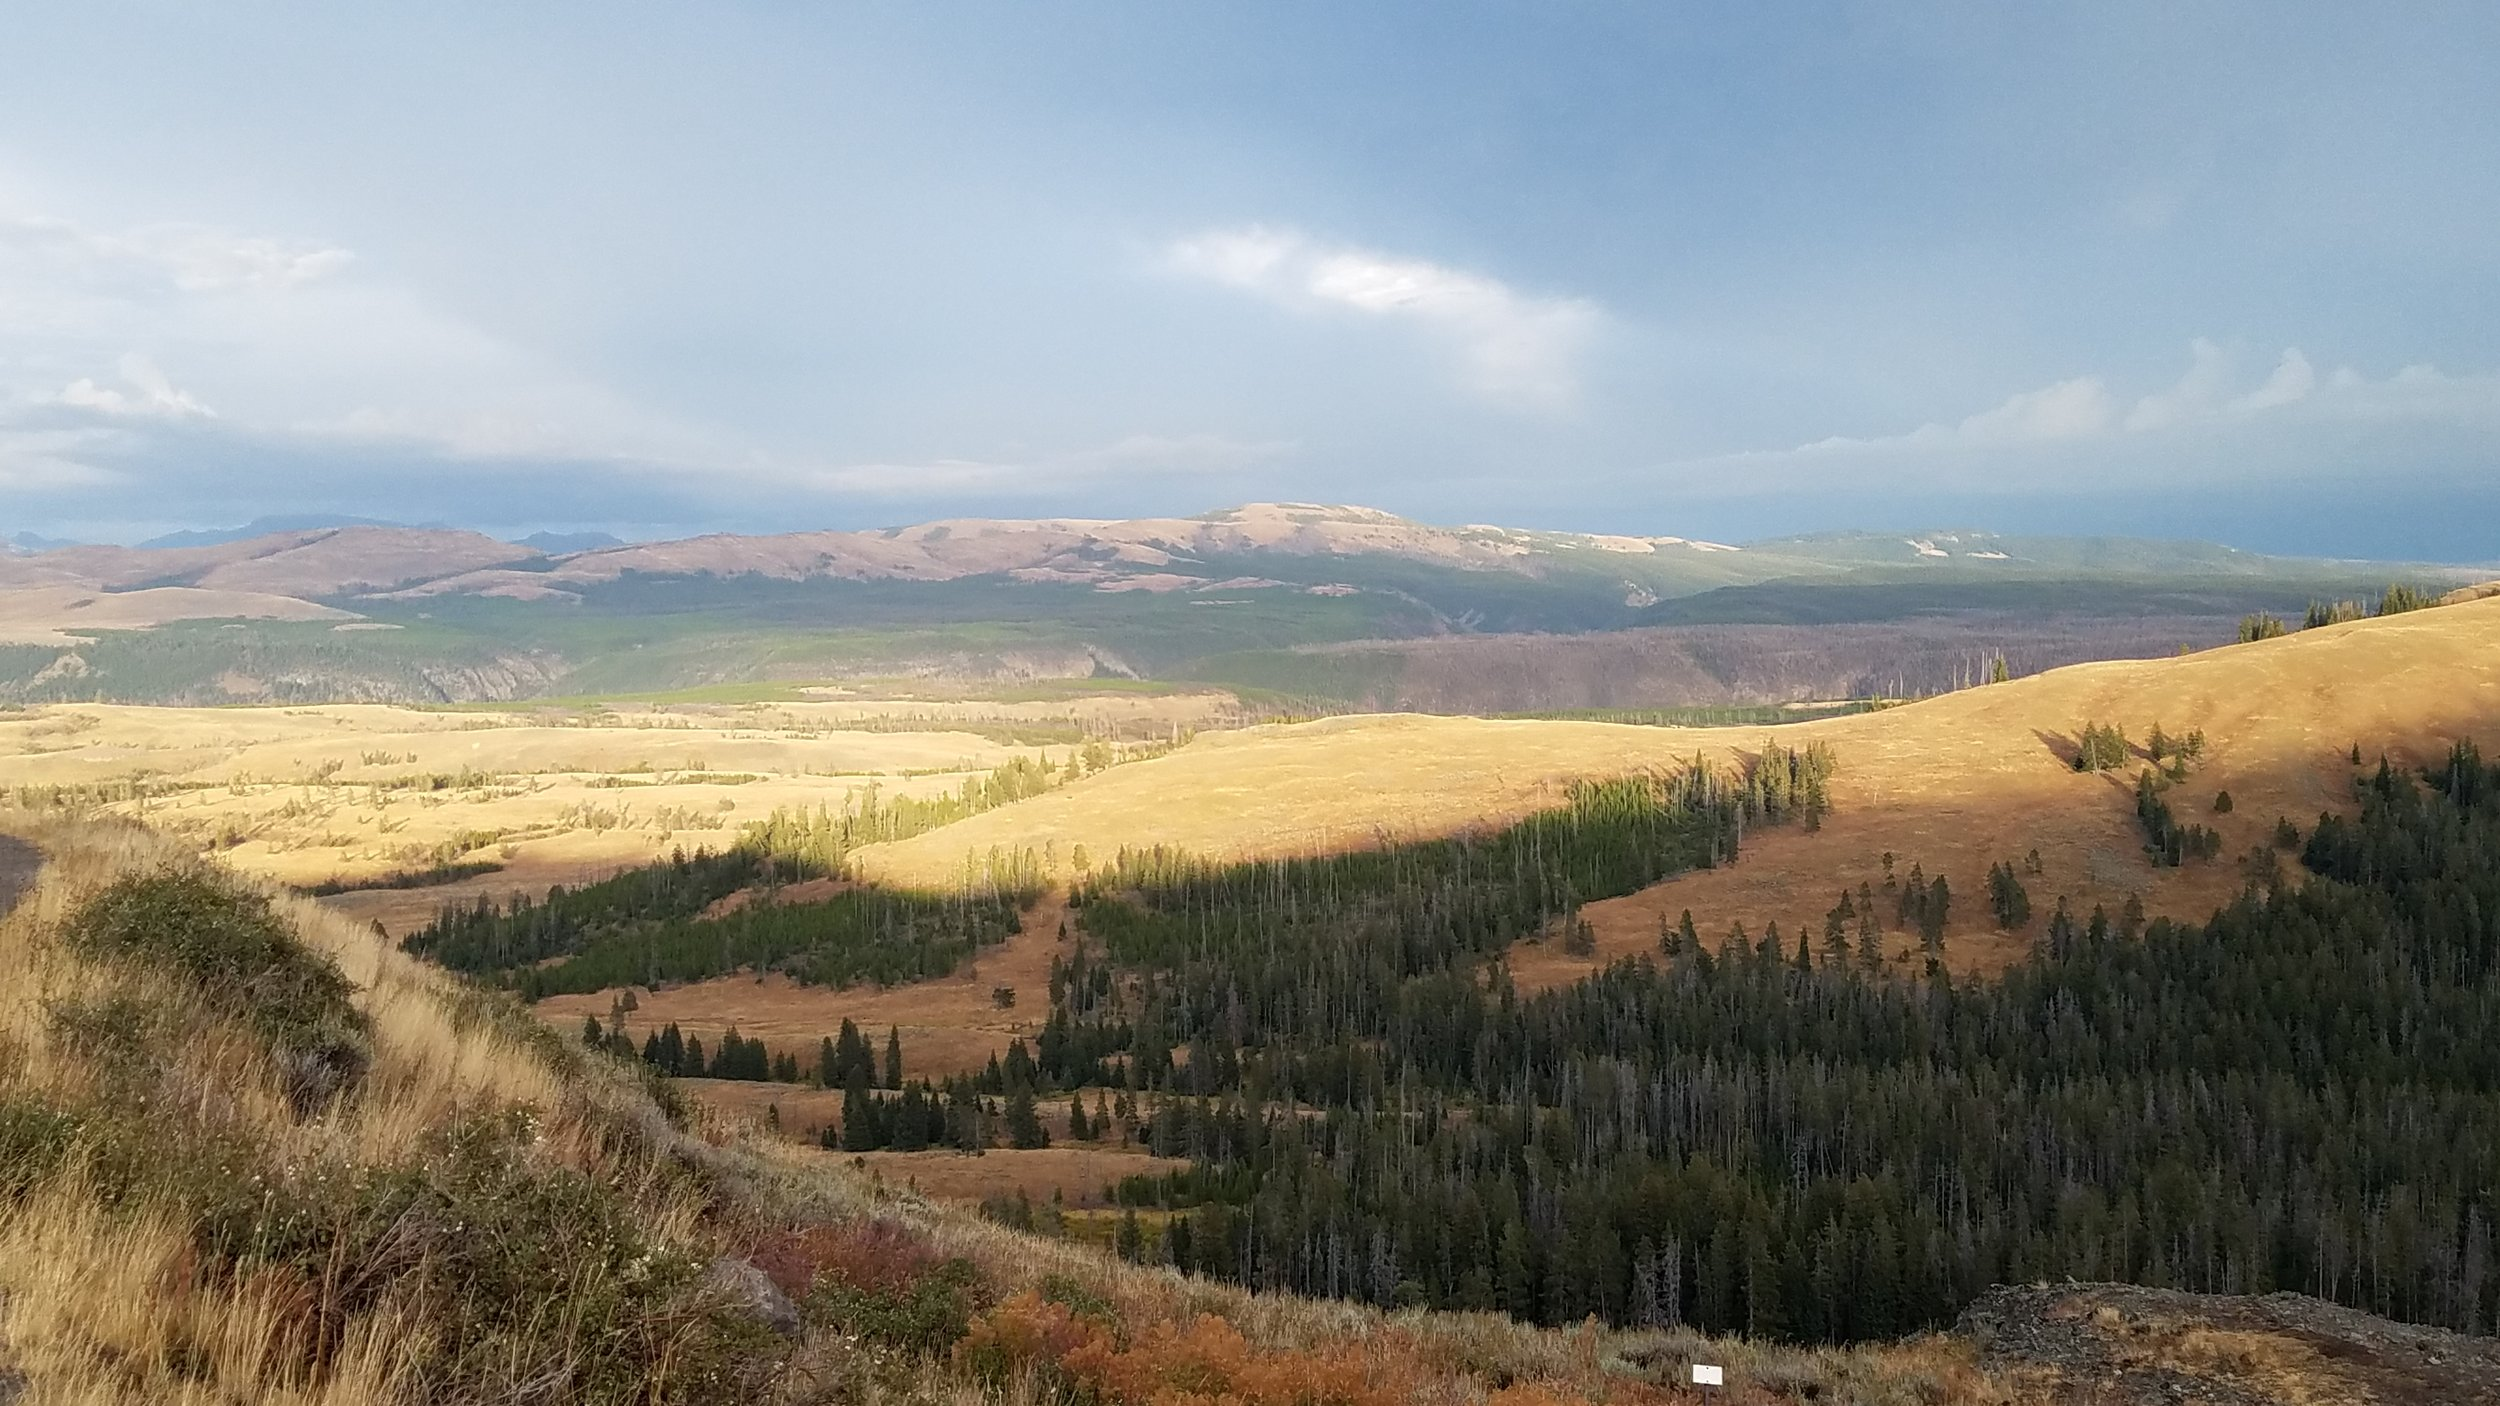 We found that the Cooke City home base allowed us to begin and end each day with a drive through our favorite part, the Lamar Valley.